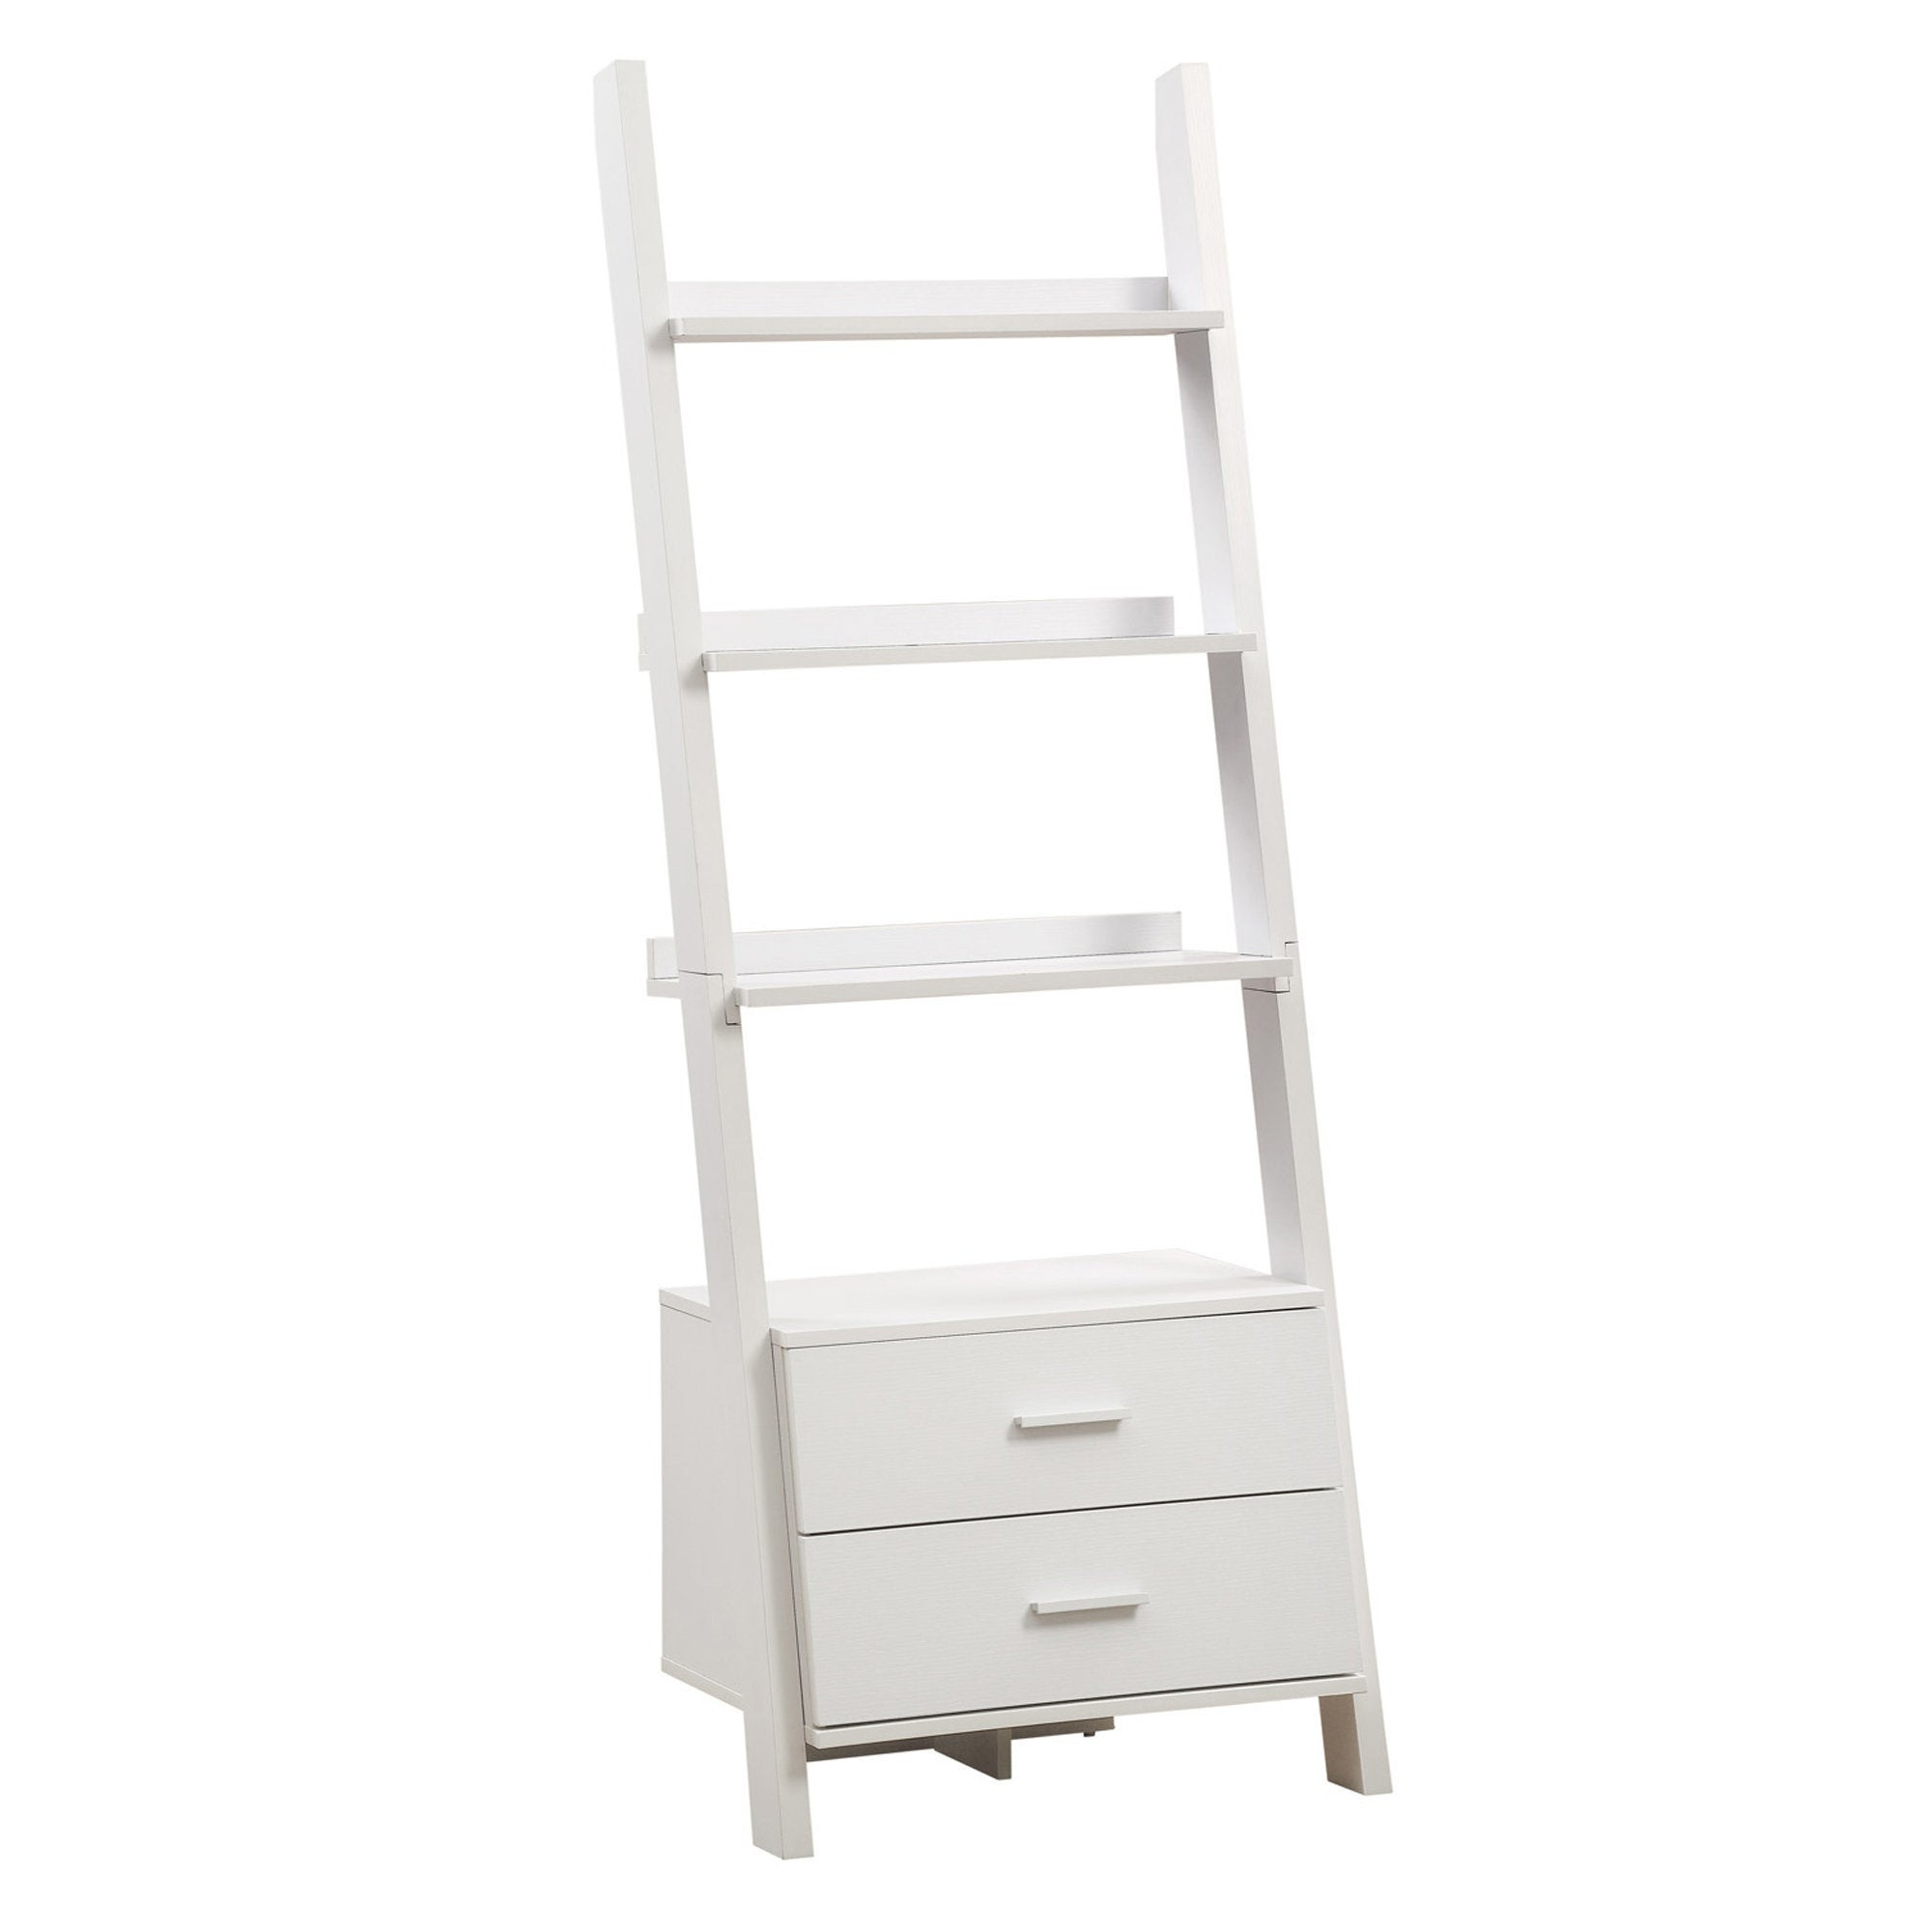 on sale e3f2b 3b2b8 Monarch Specialties I 2562 69 Inch Tall Ladder Shelving Unit with 2 Drawers  - White